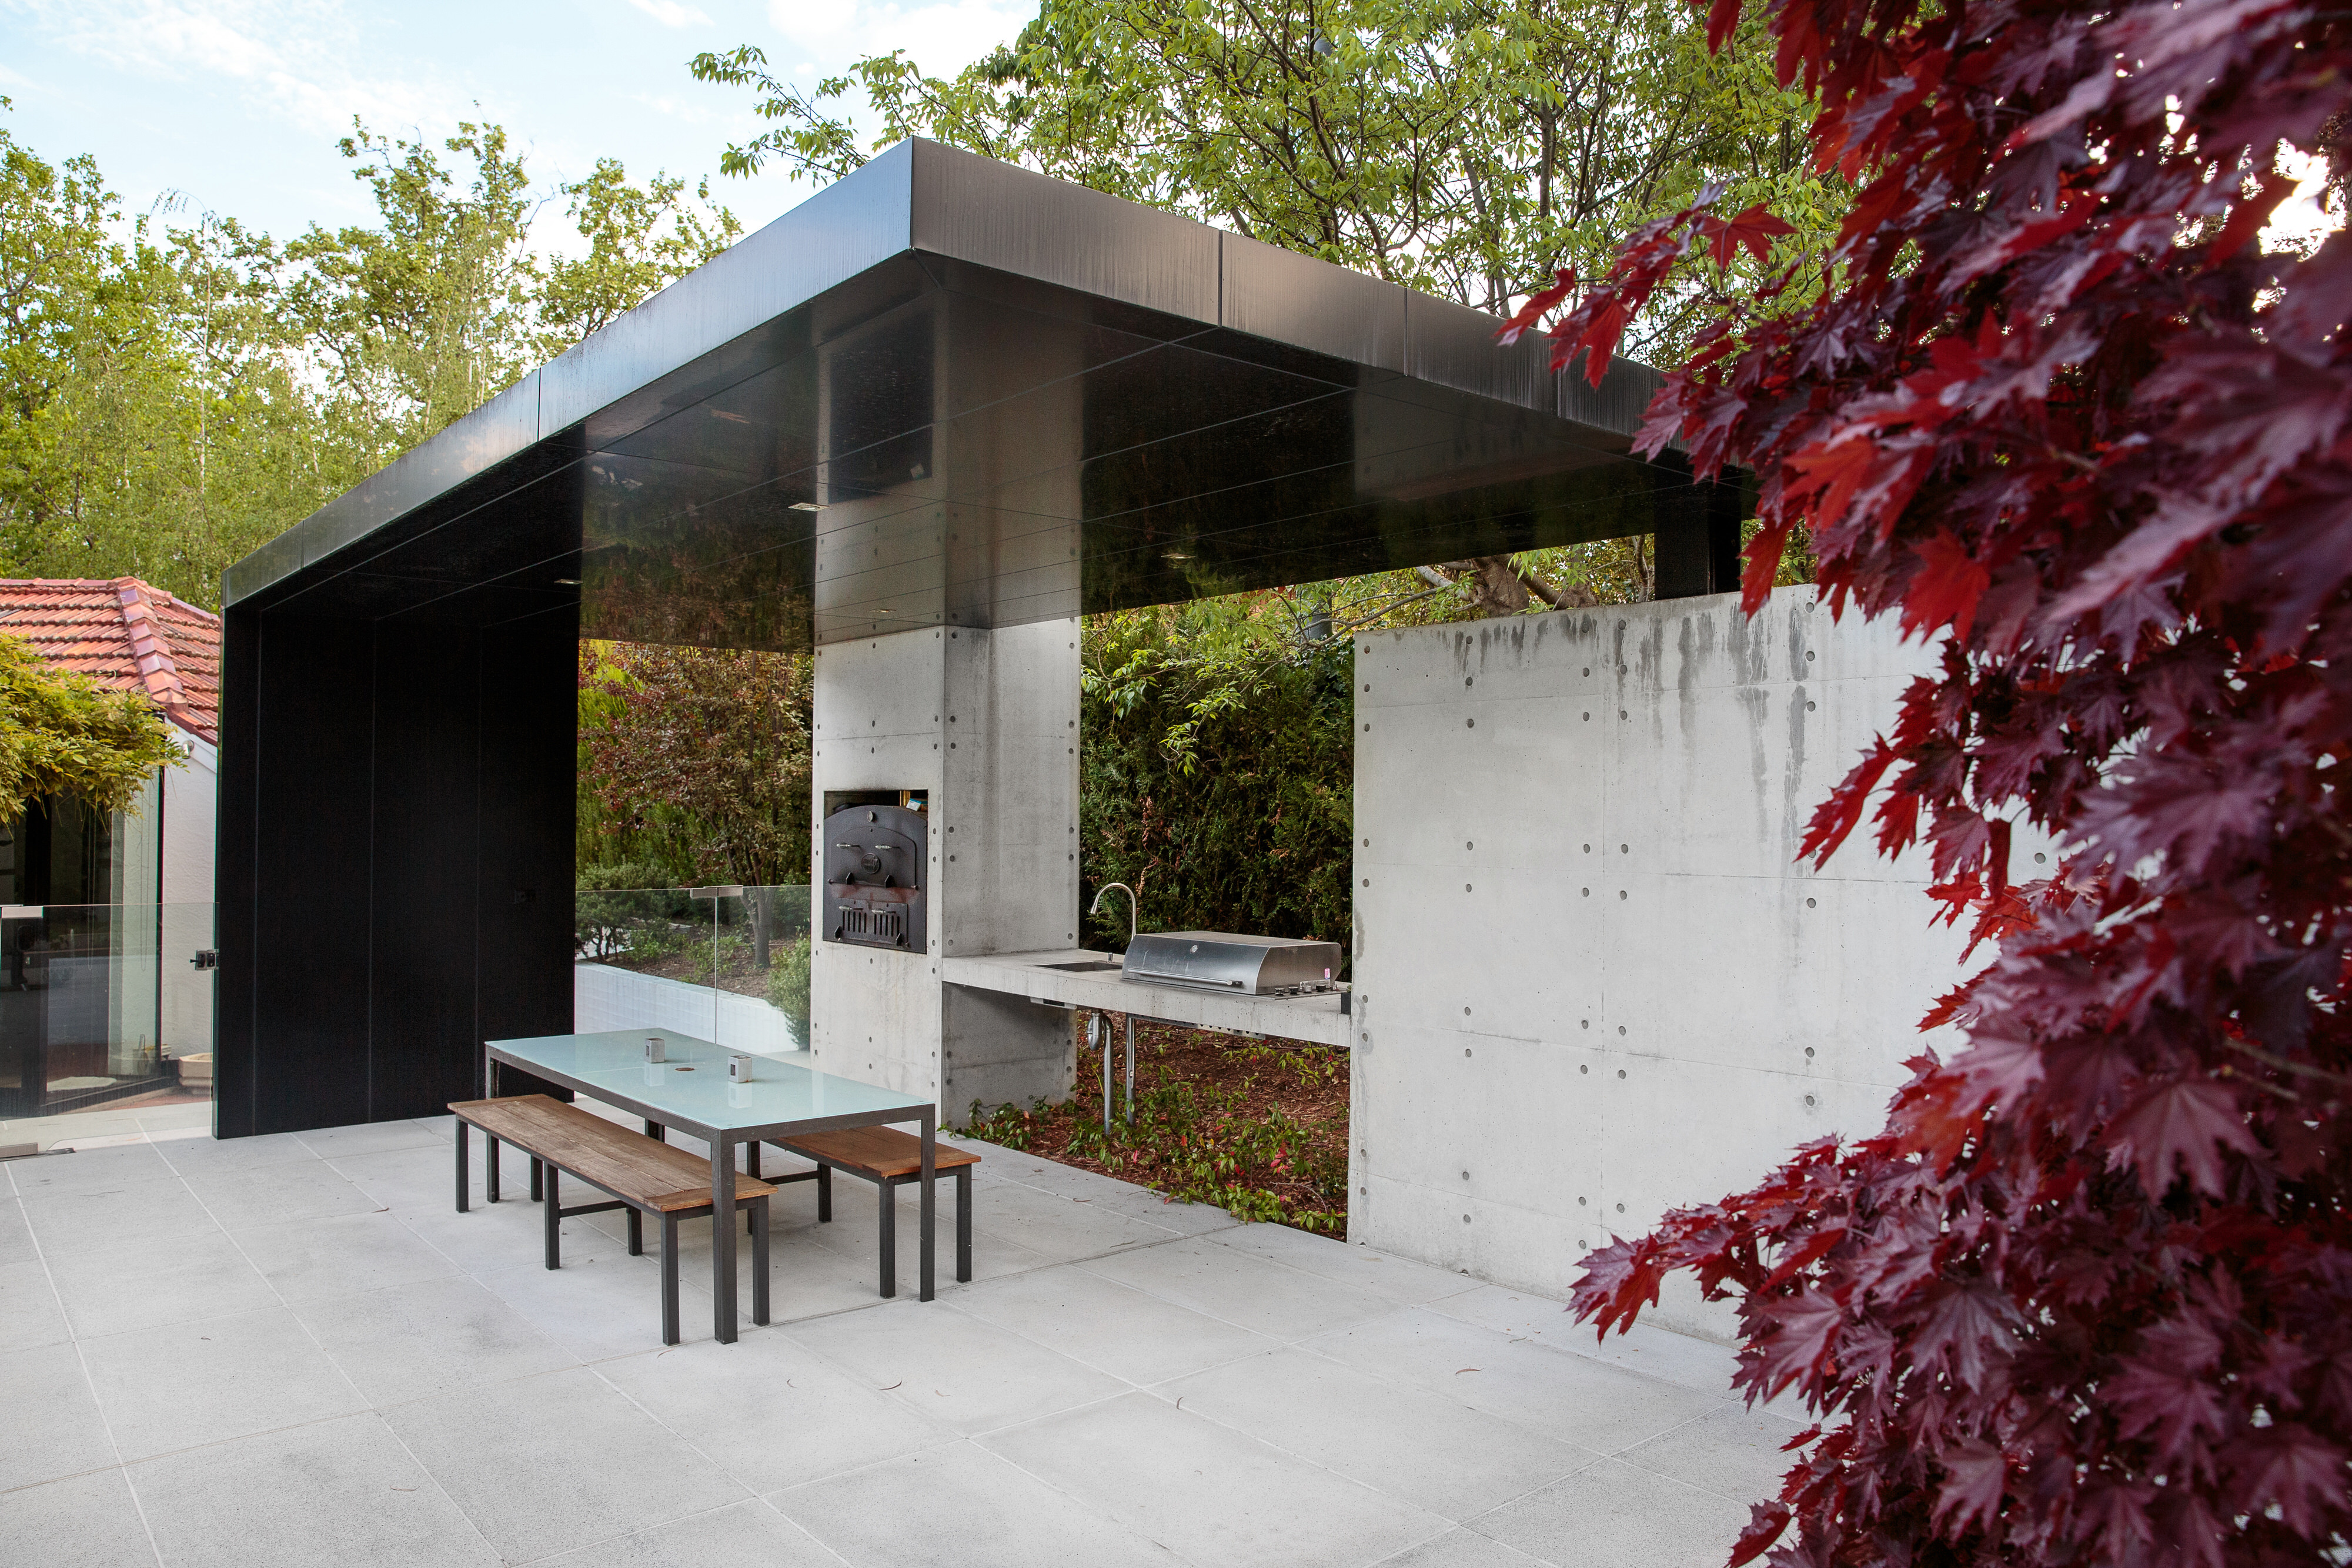 Swimming pool and outdoor dining area constructed in off form concrete